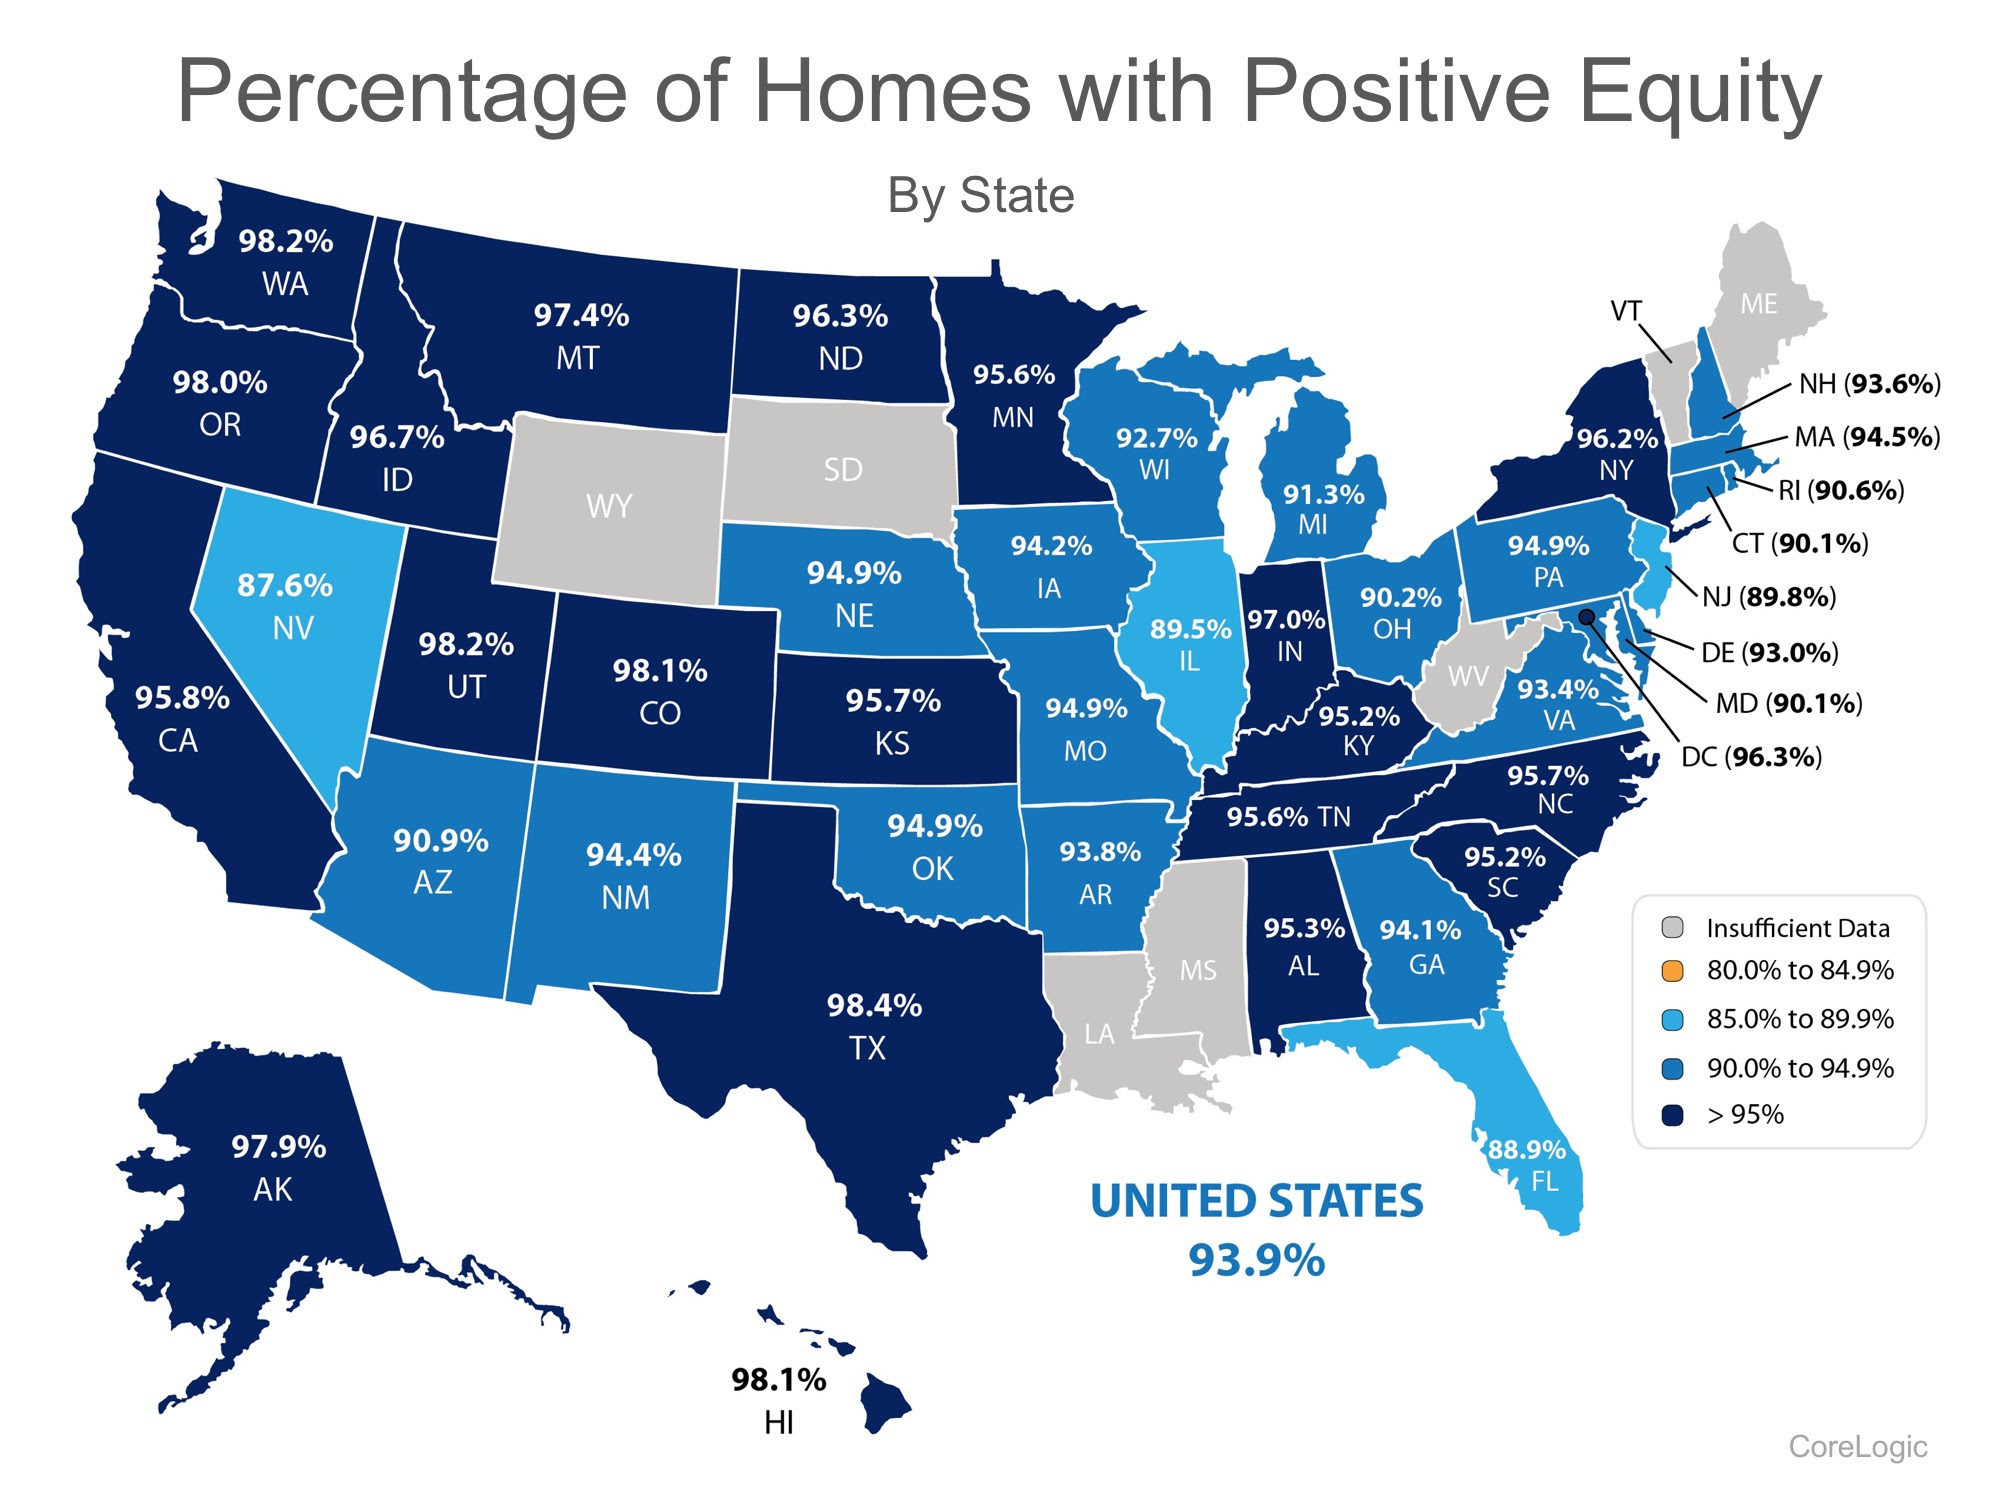 93.9% Of Homes in The US Have Positive Equity